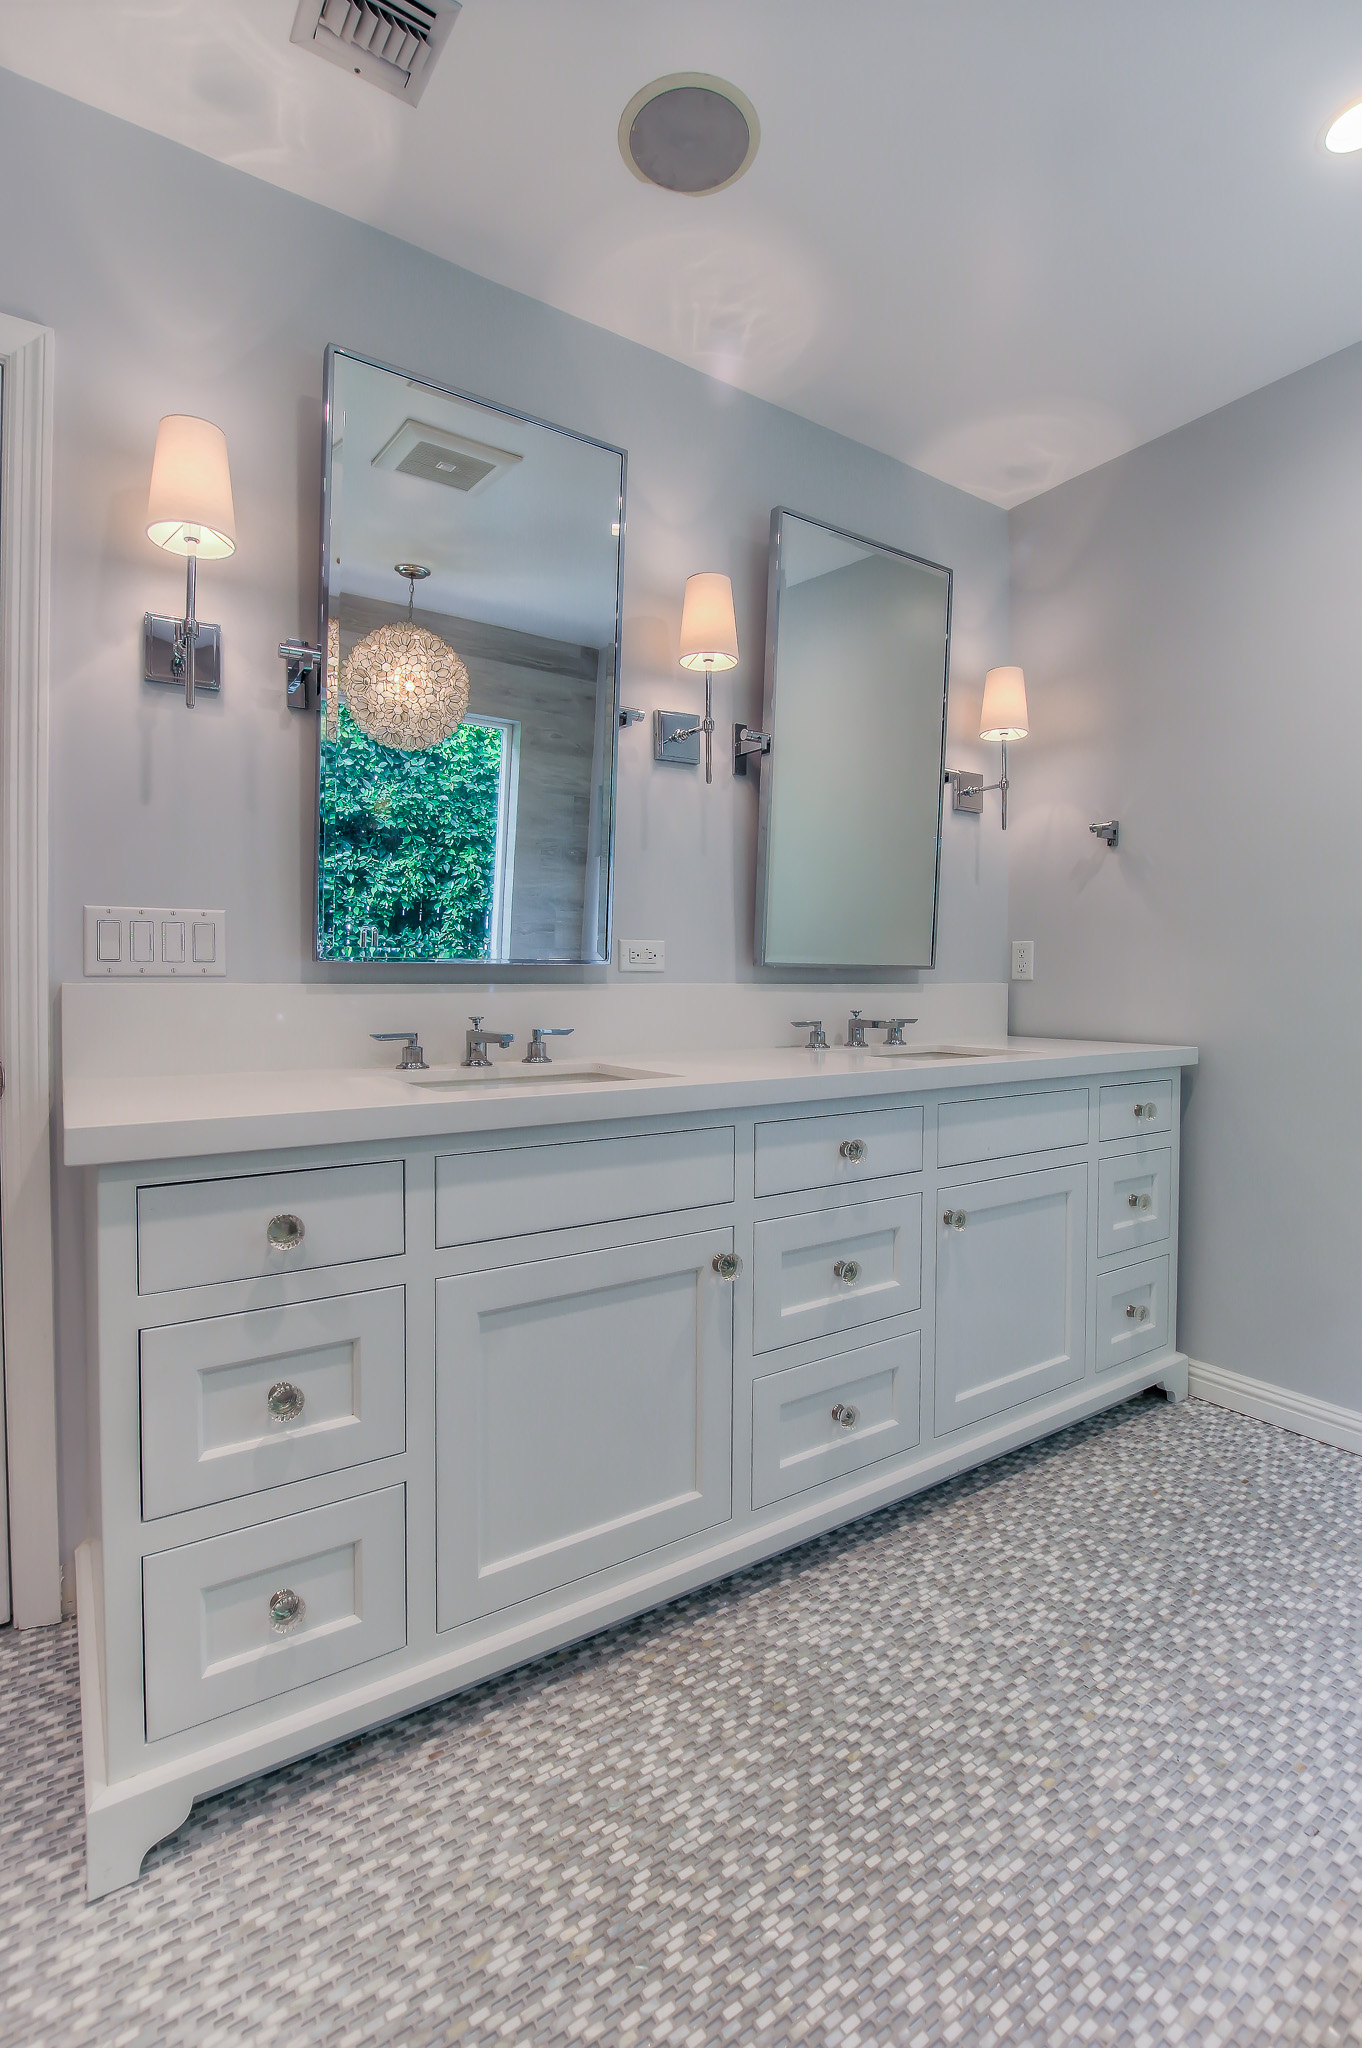 West LA bathroom redesign and remodeling